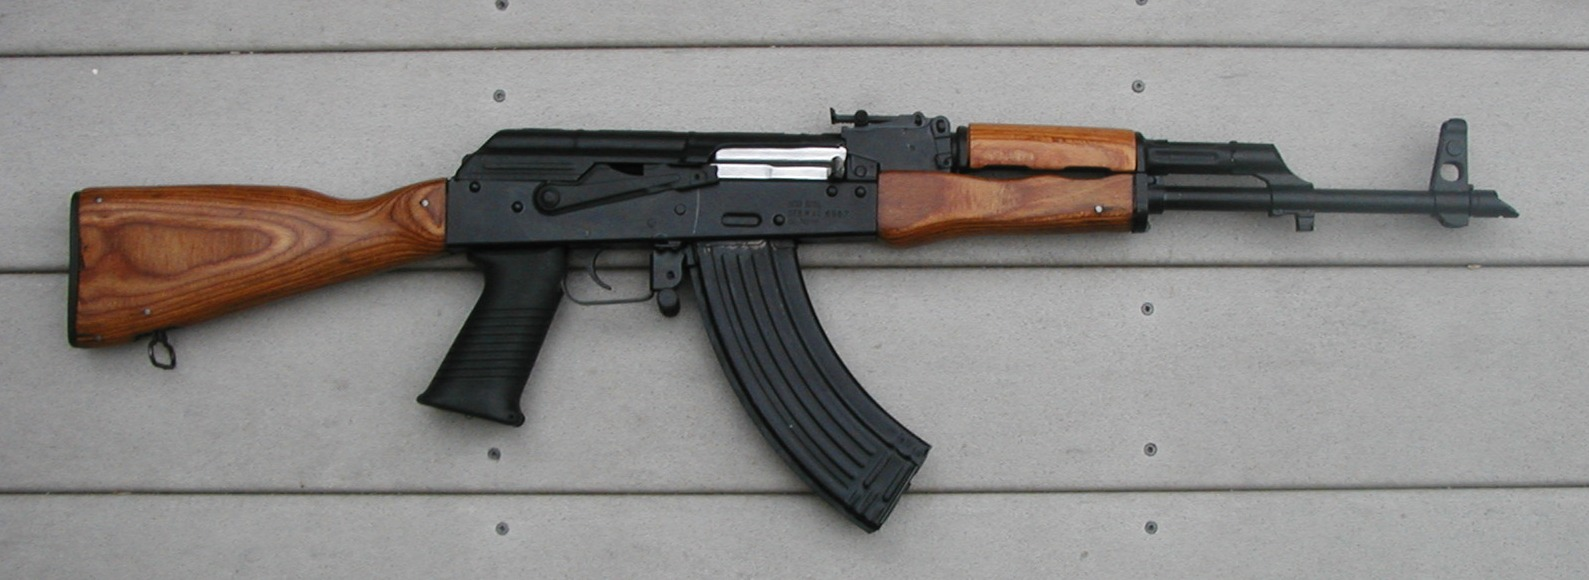 Saiga wood furniture kit ever x wood Ak 47 wooden furniture